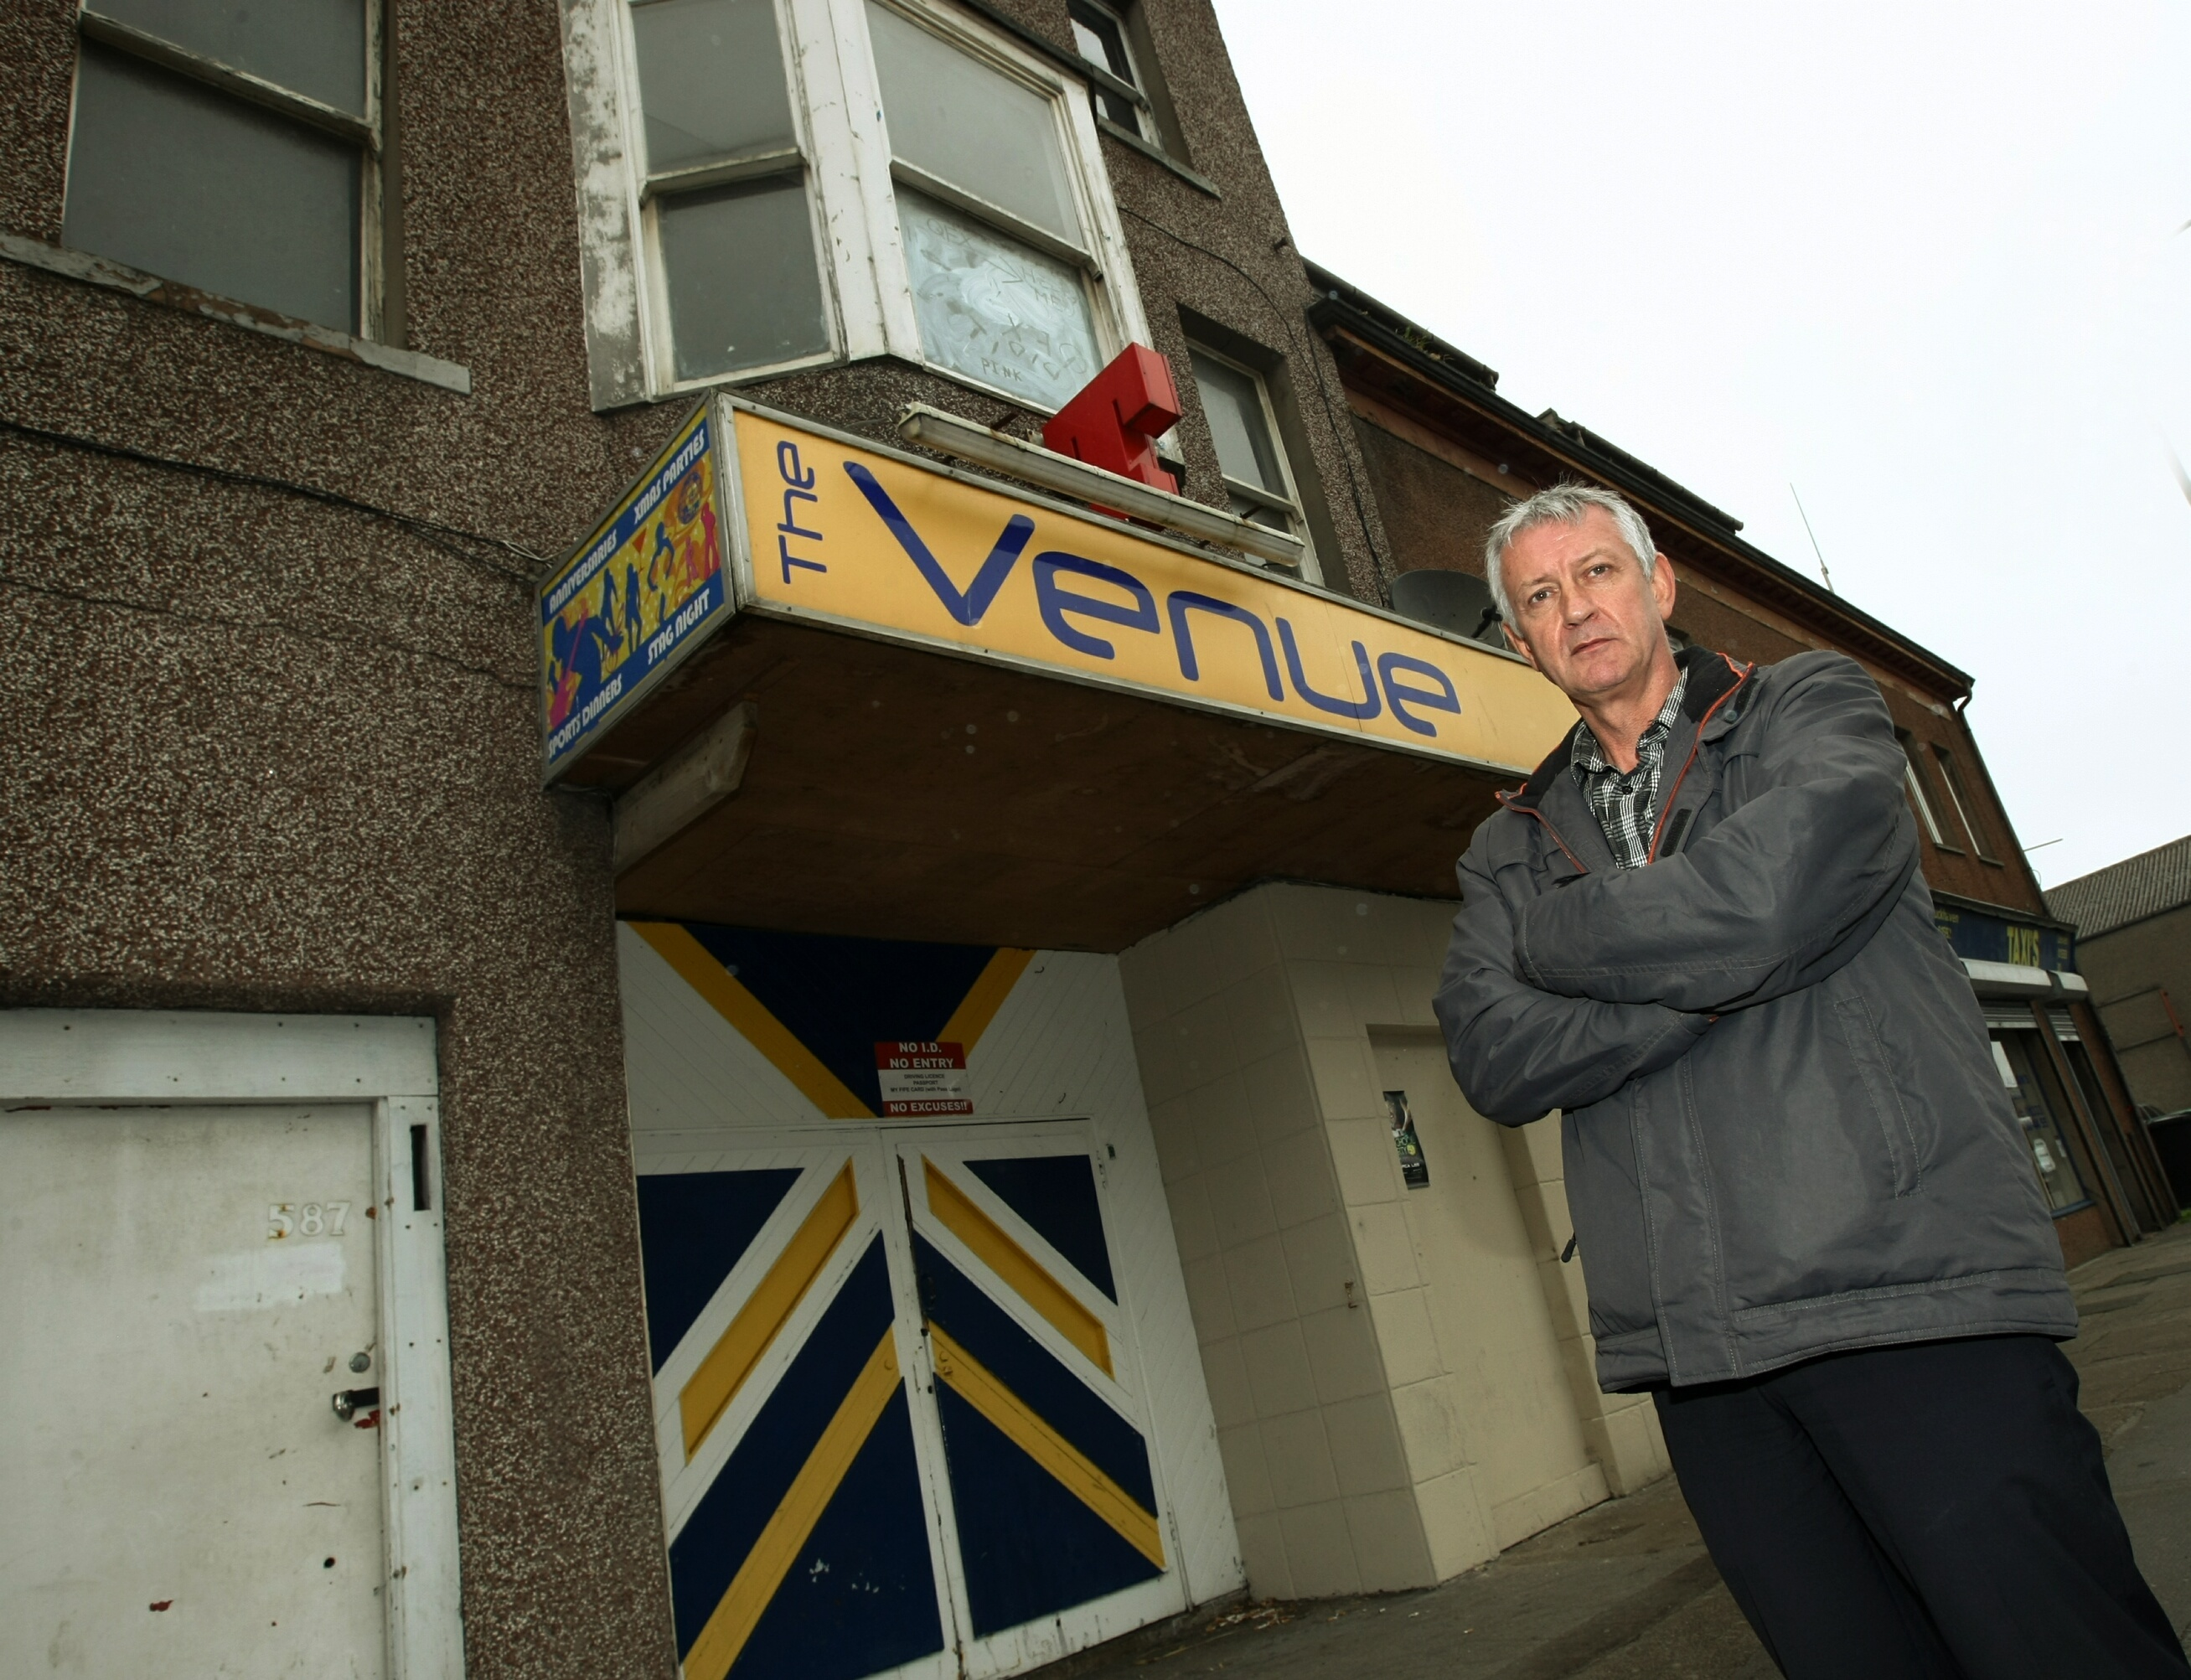 Councillor Tom Adams outside the Venue club in Methil.